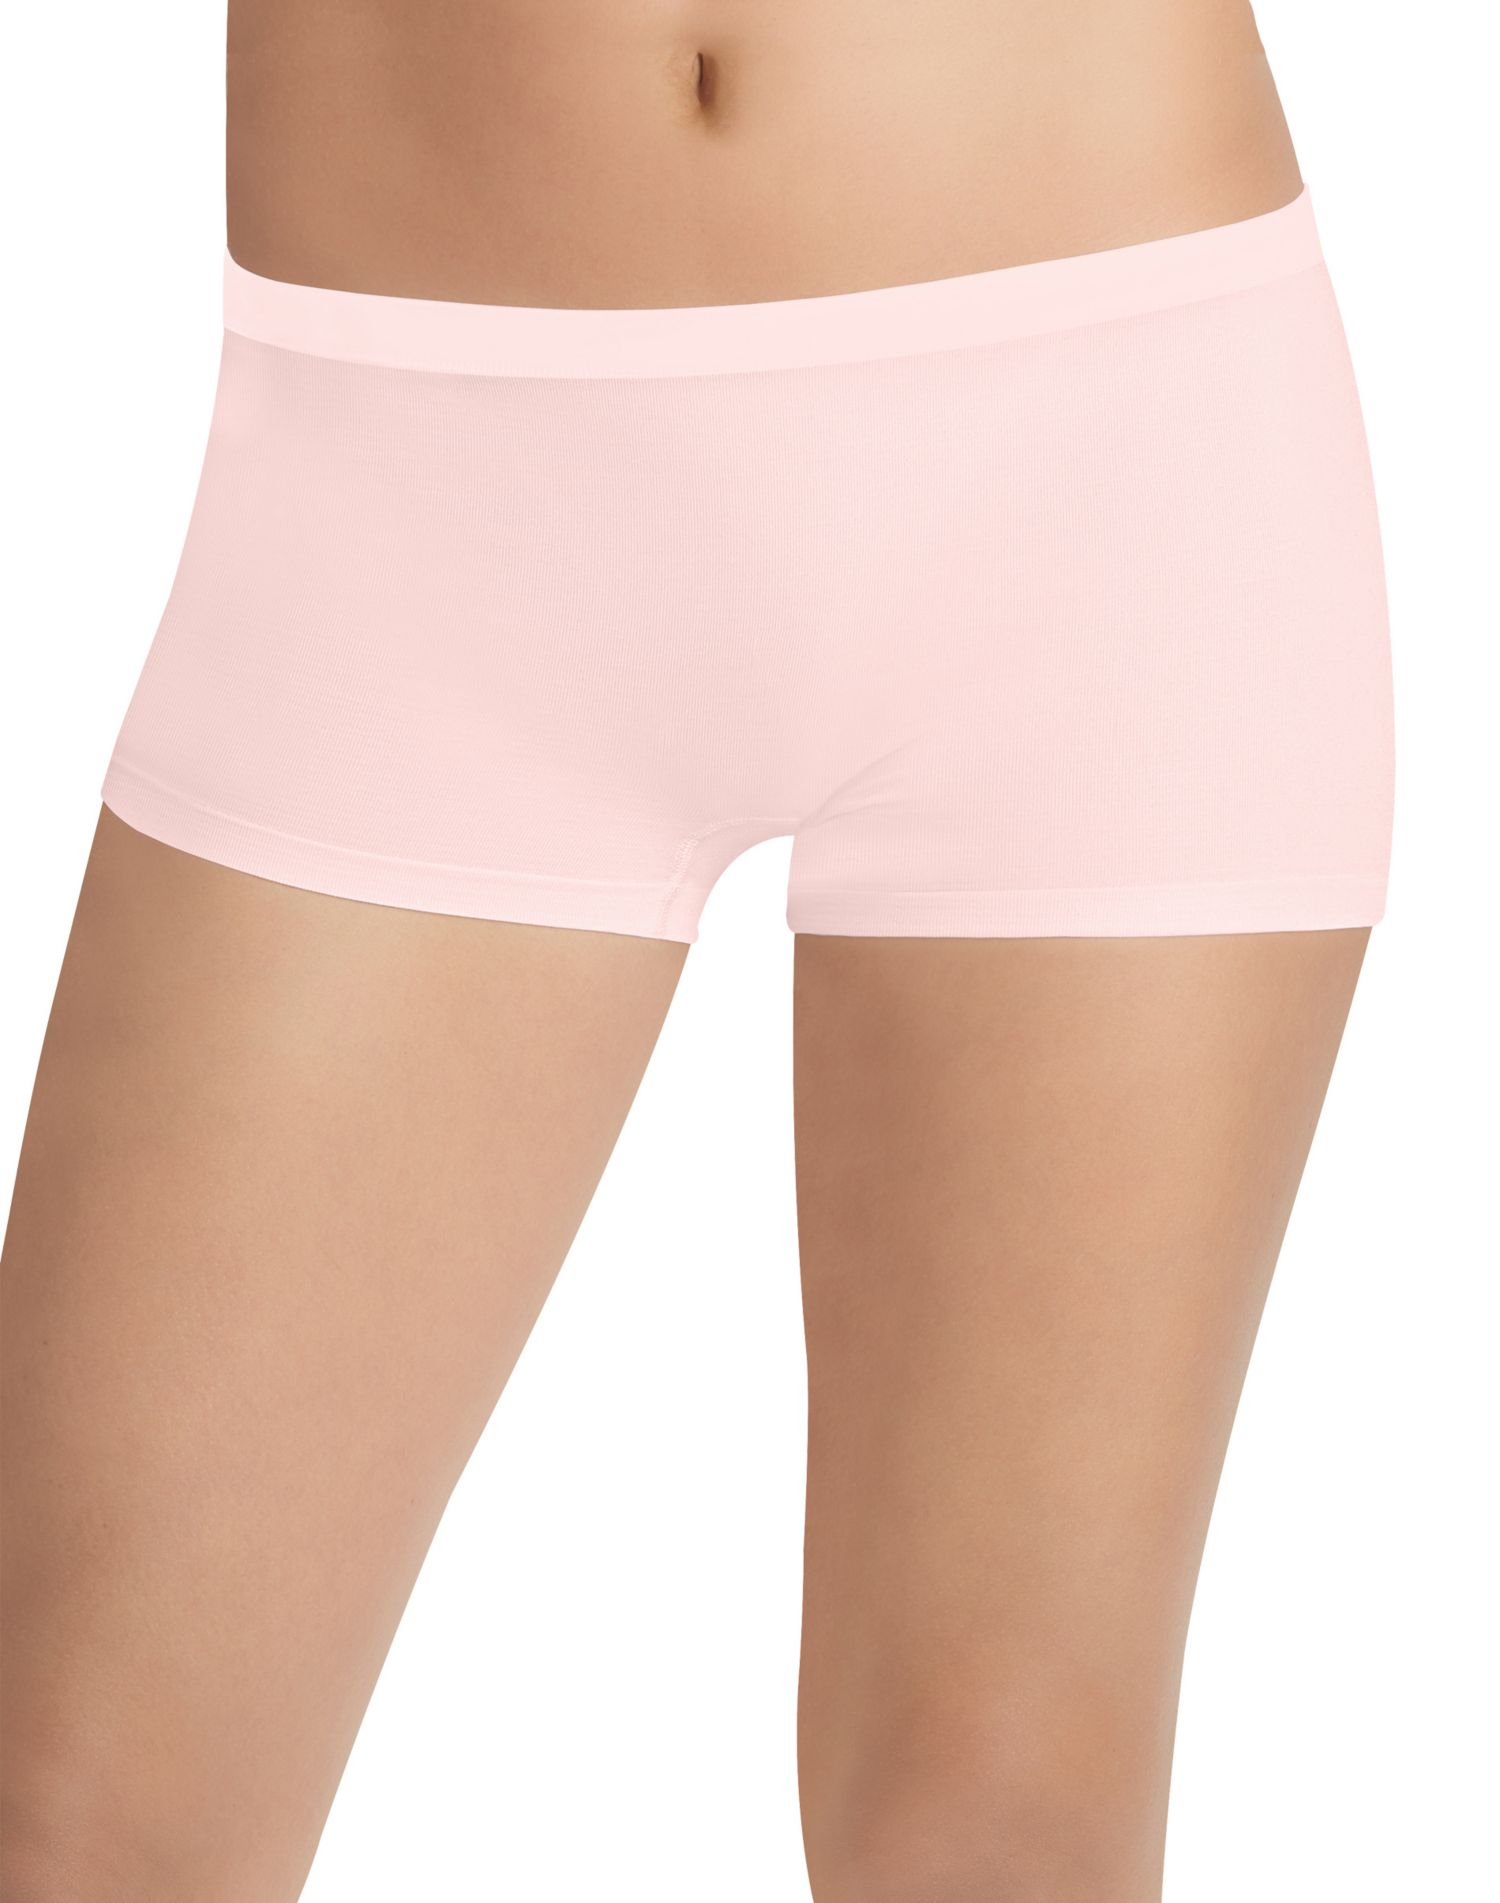 f22be5027a0 D49EAS - Hanes Women's Cotton Stretch Boy Short Panties 2-Pack – NY ...